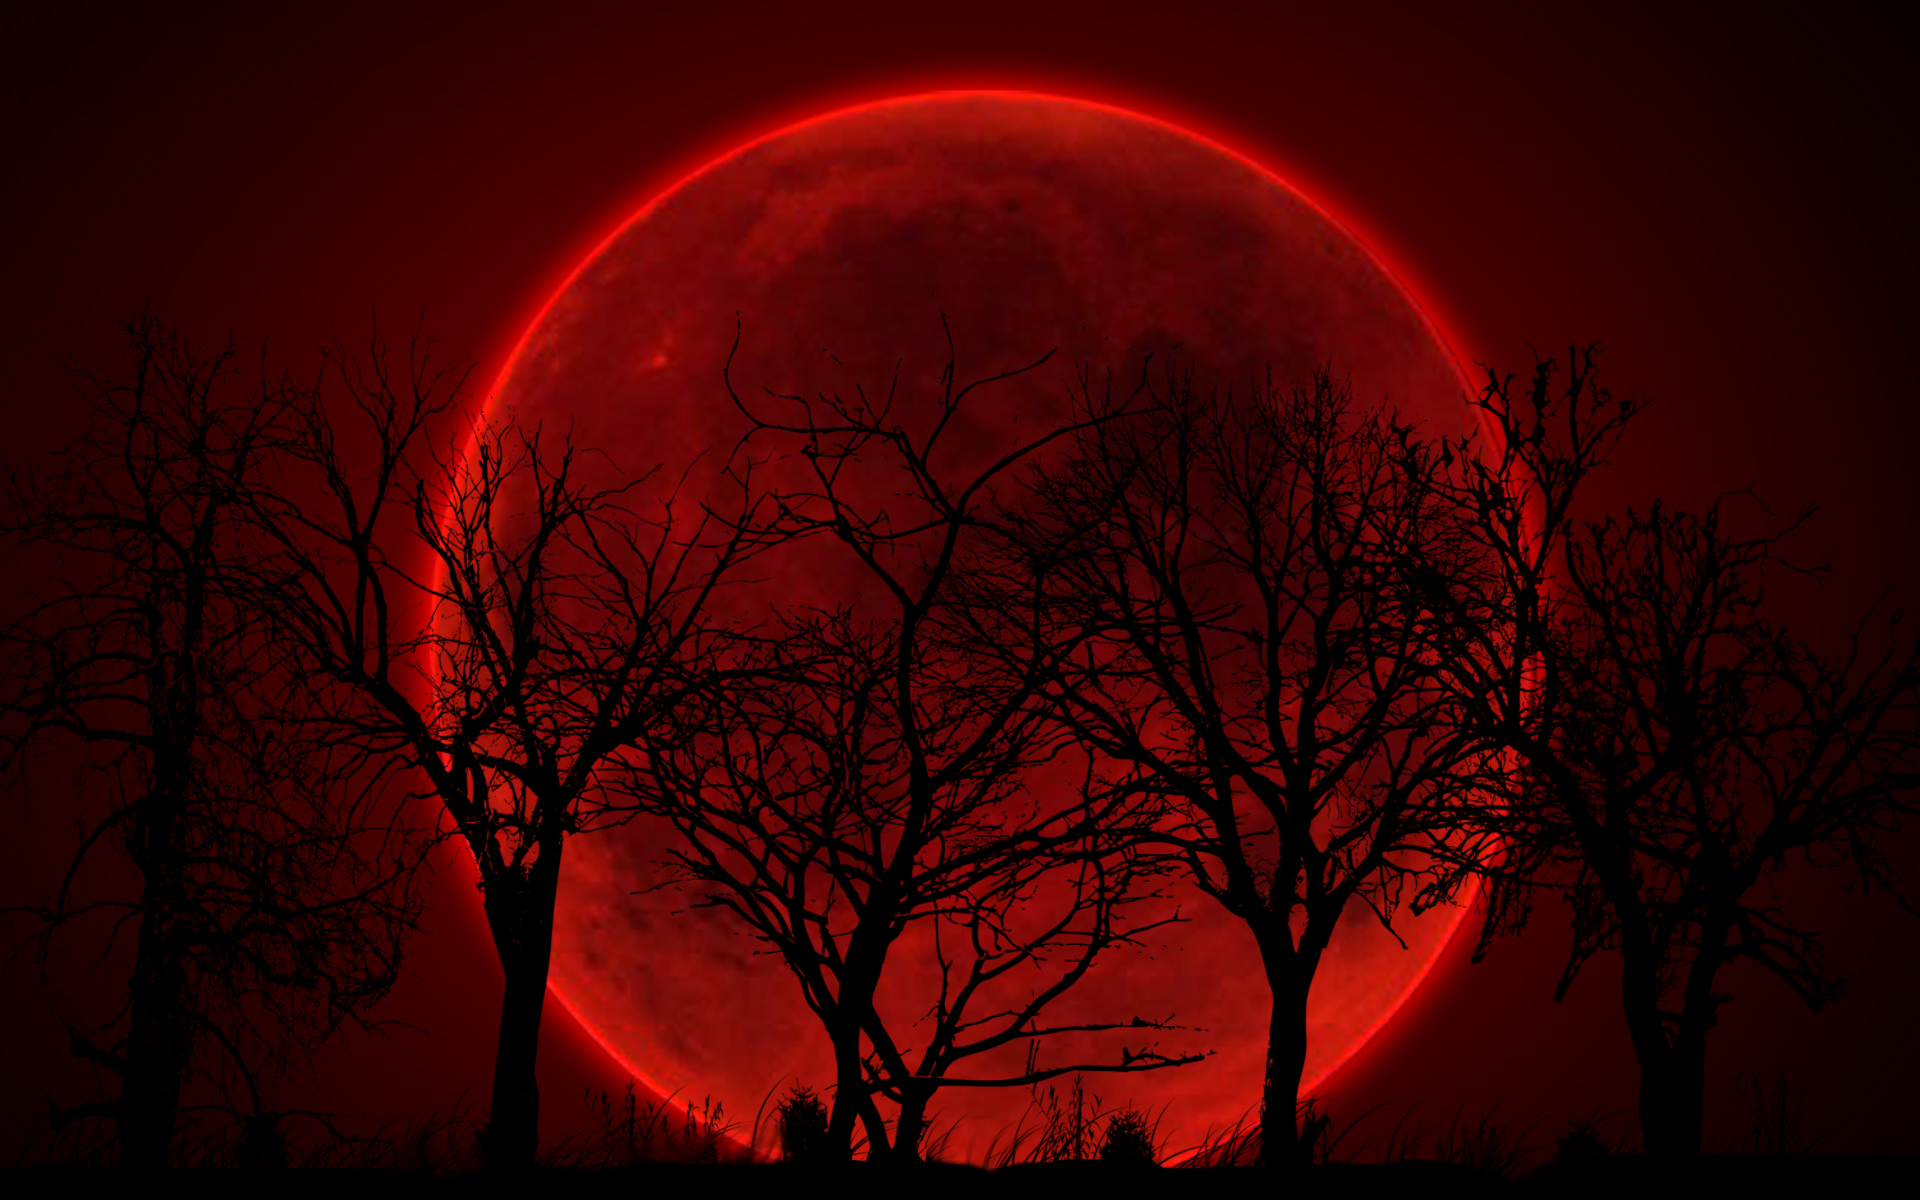 High Quality Red Moon Wallpaper | Full HD Pictures